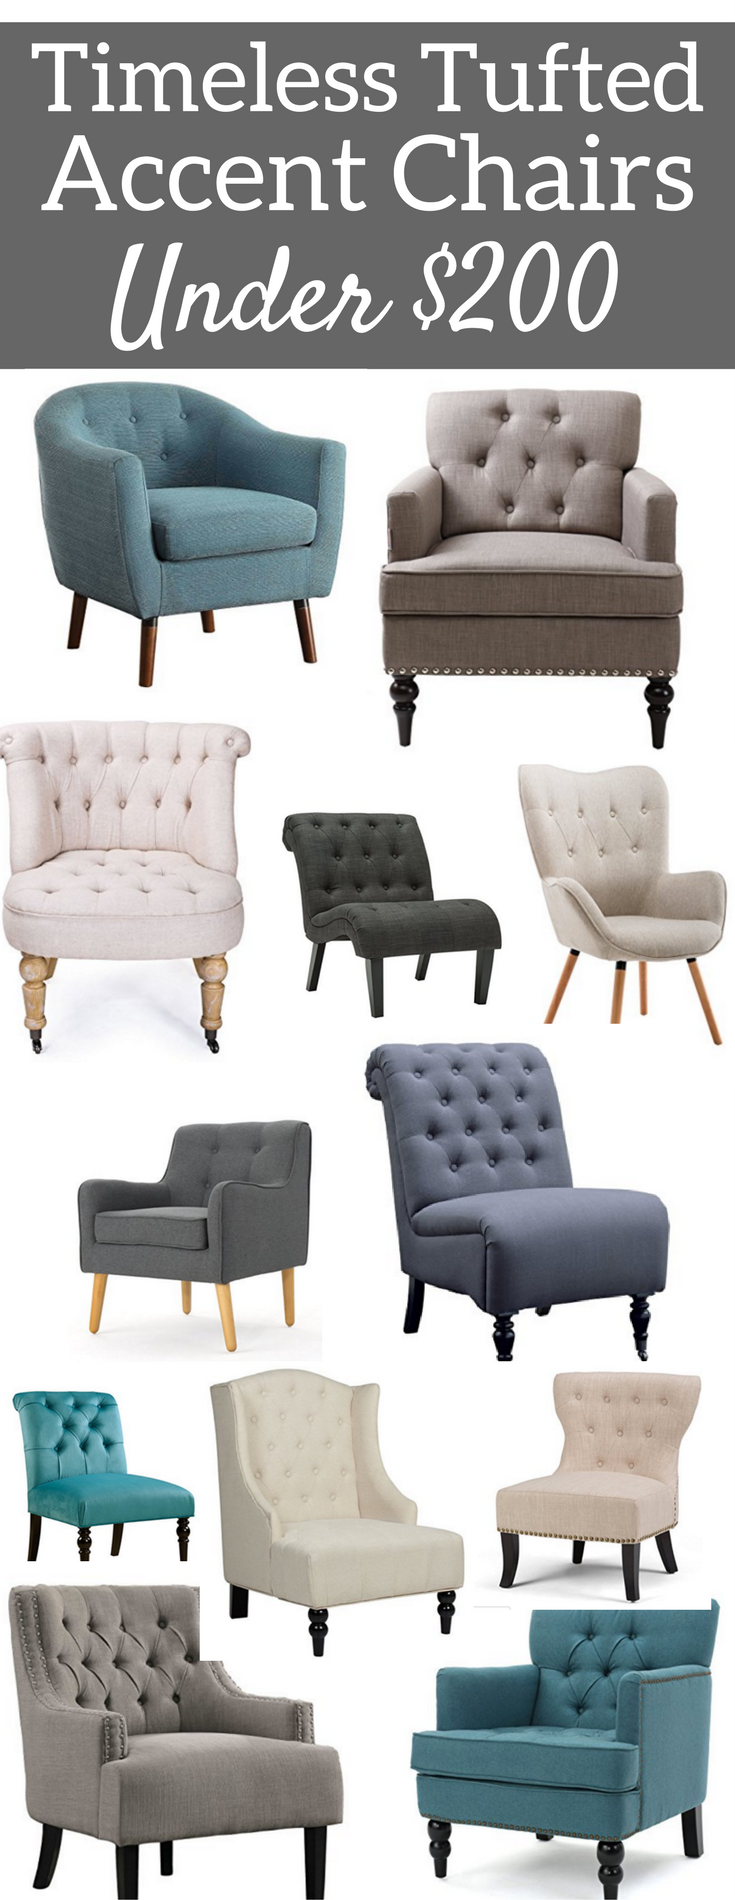 Living Room Accent Chairs That Are Tufted Met Afbeeldingen